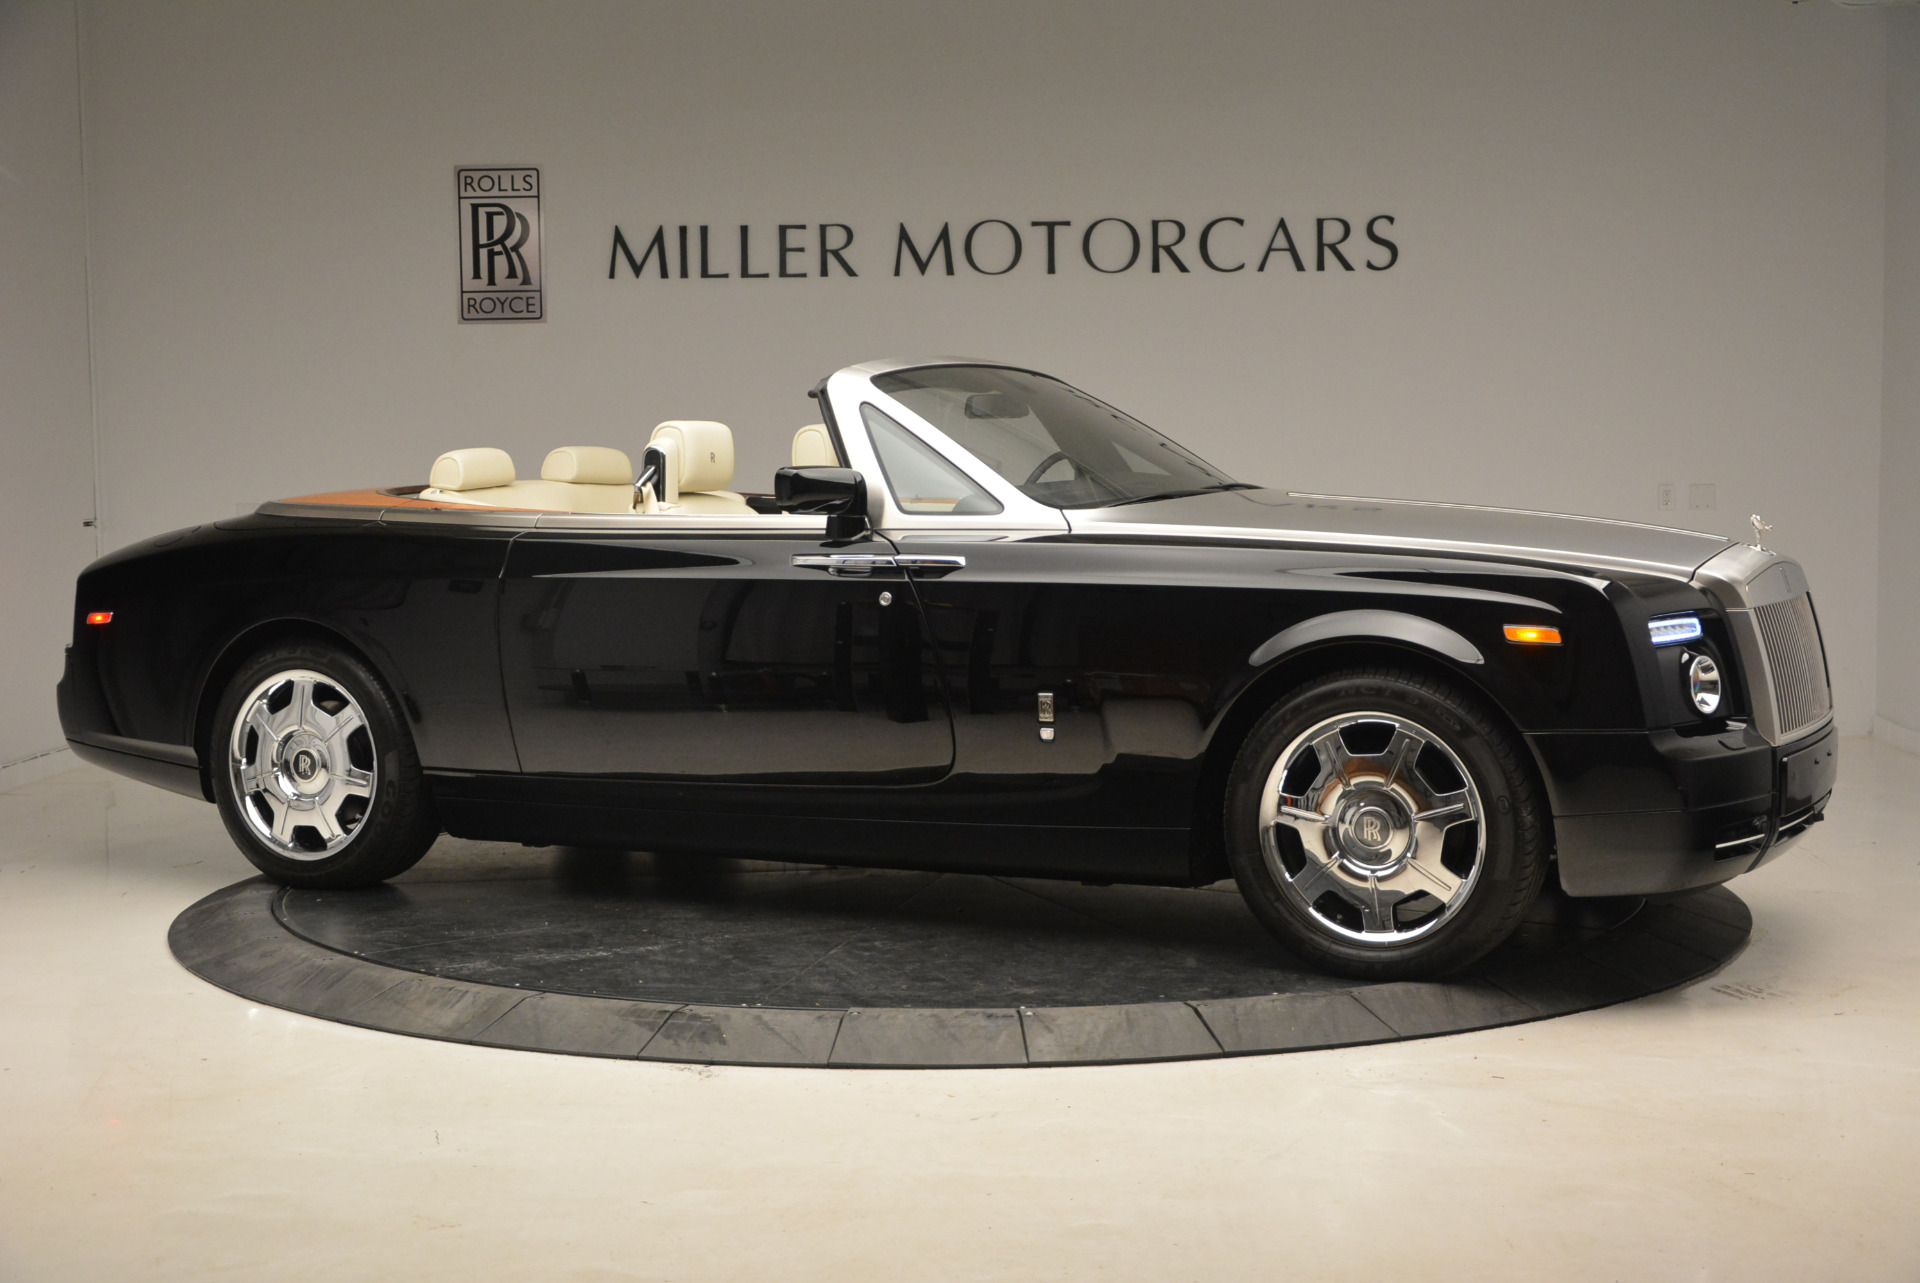 Used 2009 Rolls-Royce Phantom Drophead Coupe  For Sale In Westport, CT 1792_p11